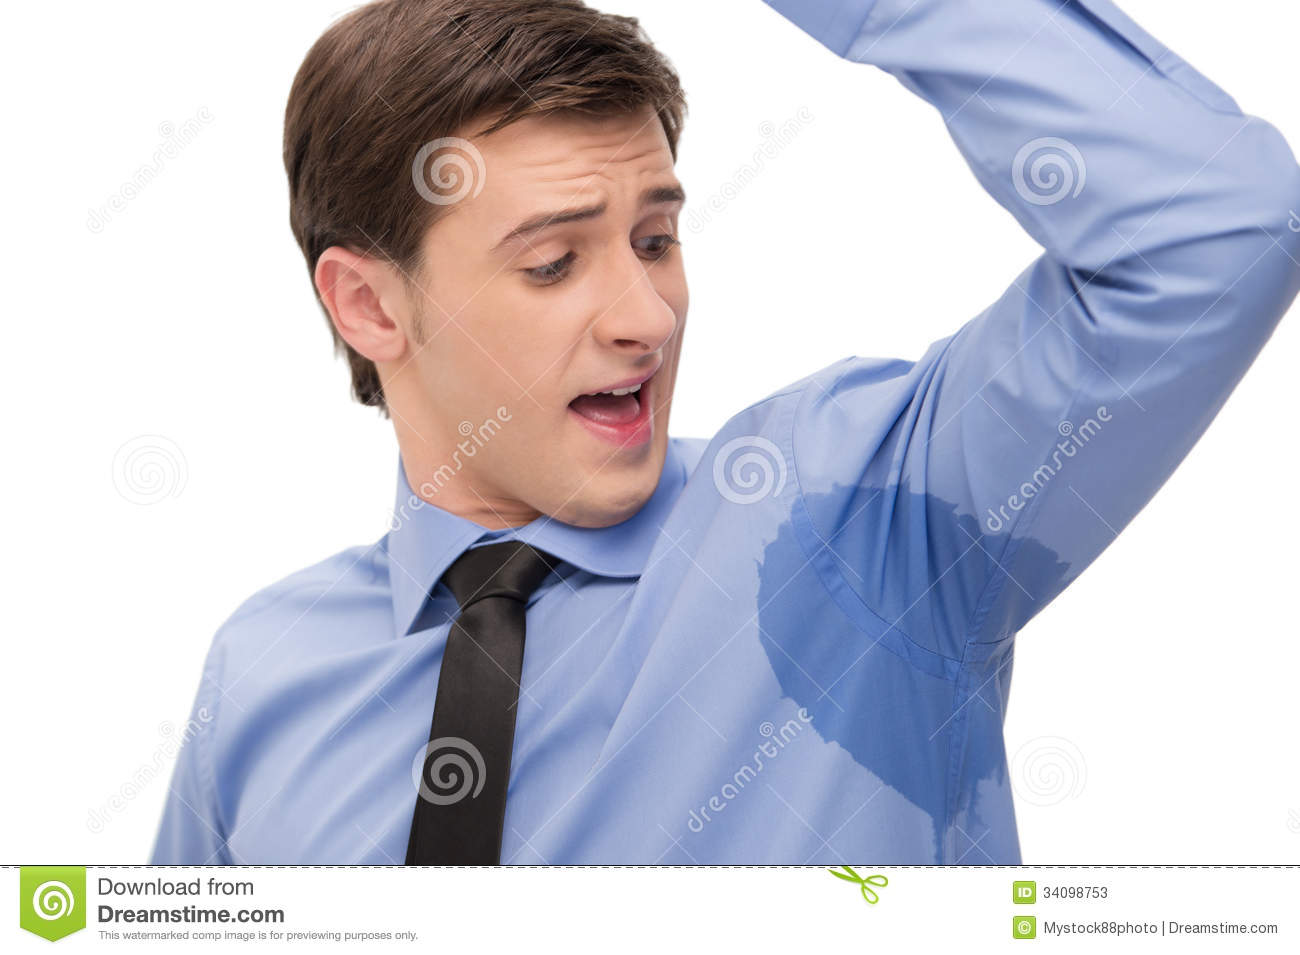 Sweaty Armpit Stock Photos - Image: 34098753